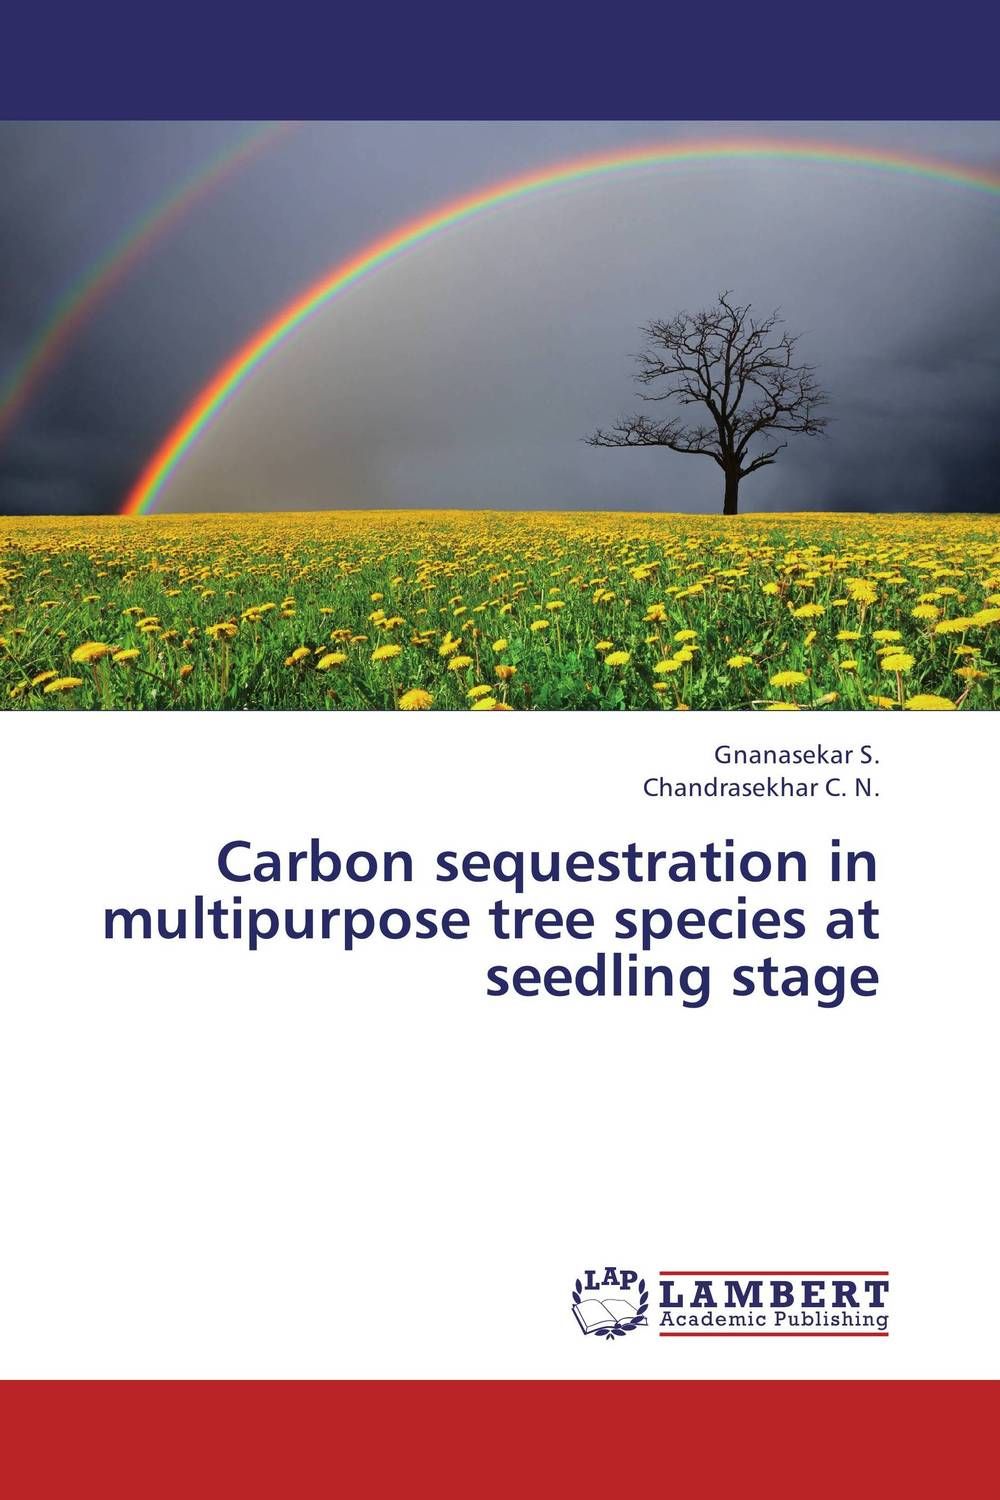 Carbon sequestration in multipurpose tree species at seedling stage the shade of my own tree